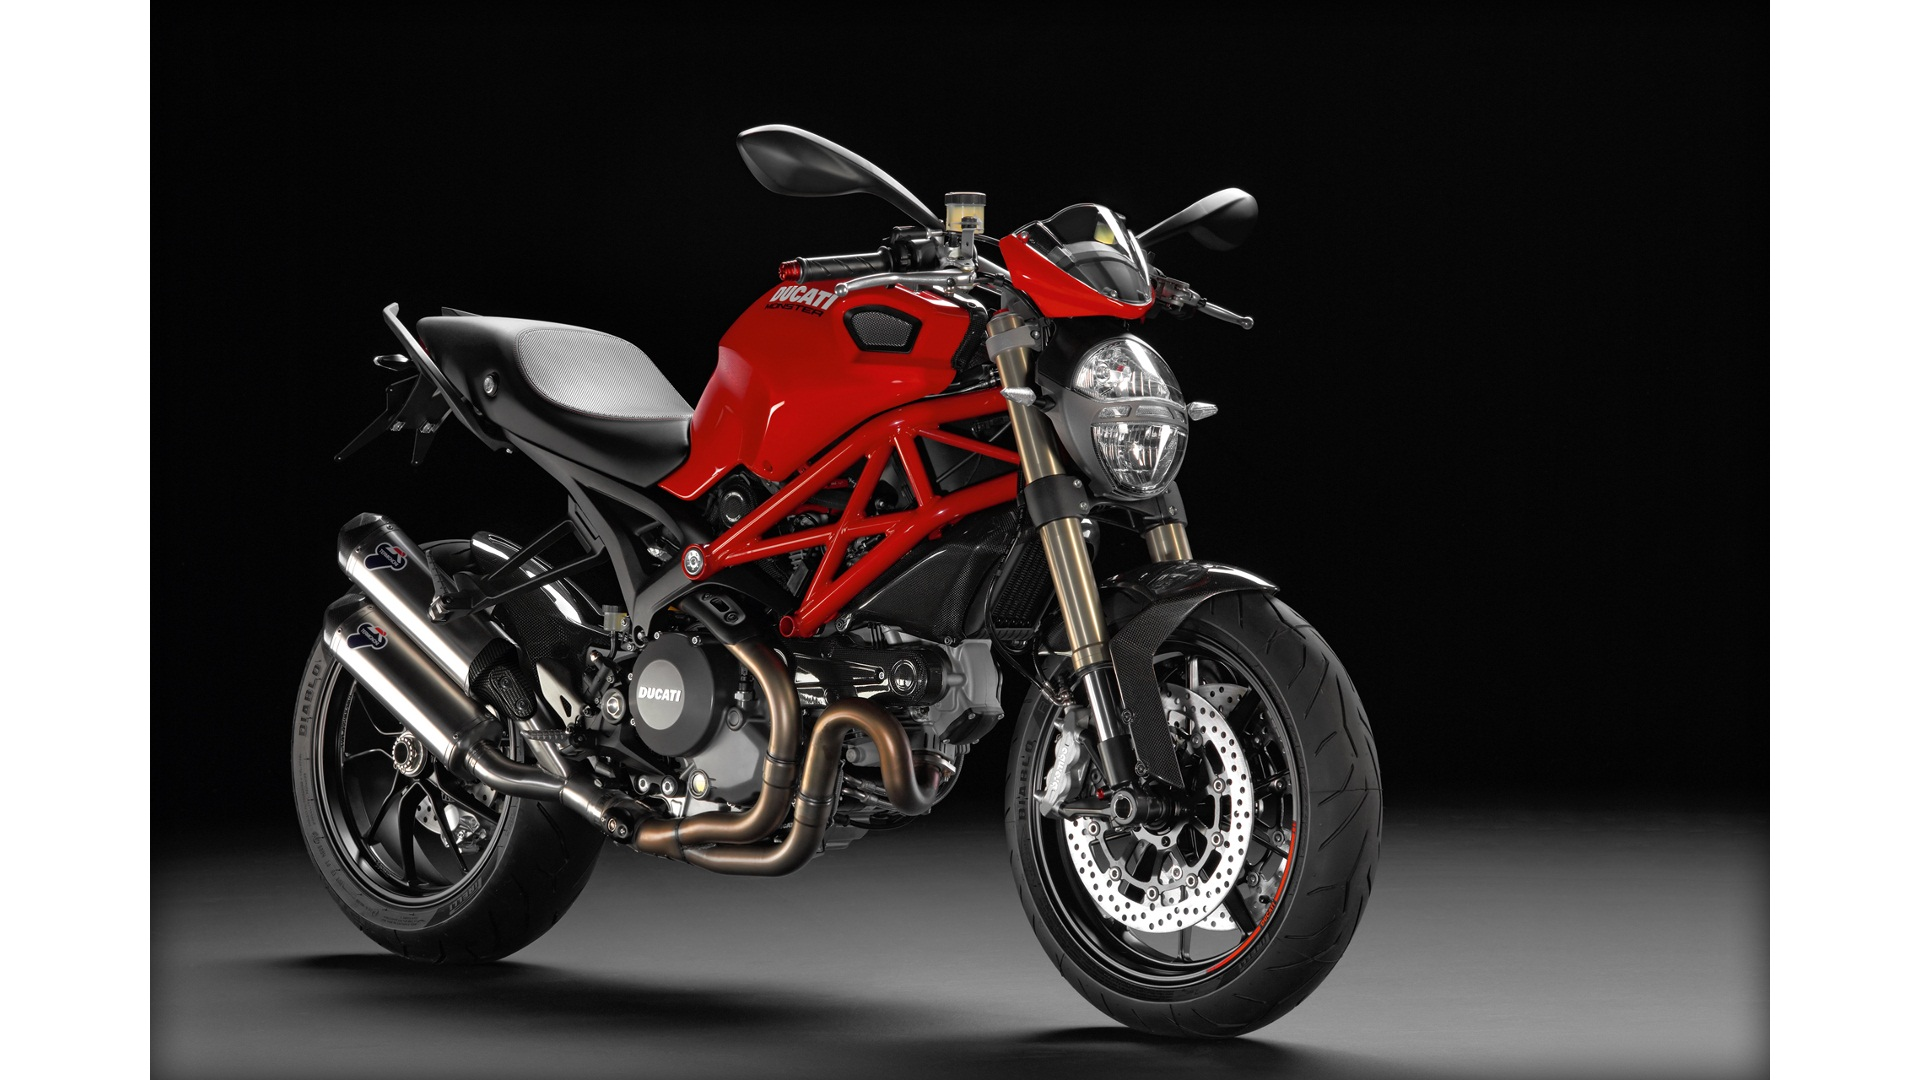 2013 ducati monster 1100 evo 20th anniversary top speed. Black Bedroom Furniture Sets. Home Design Ideas